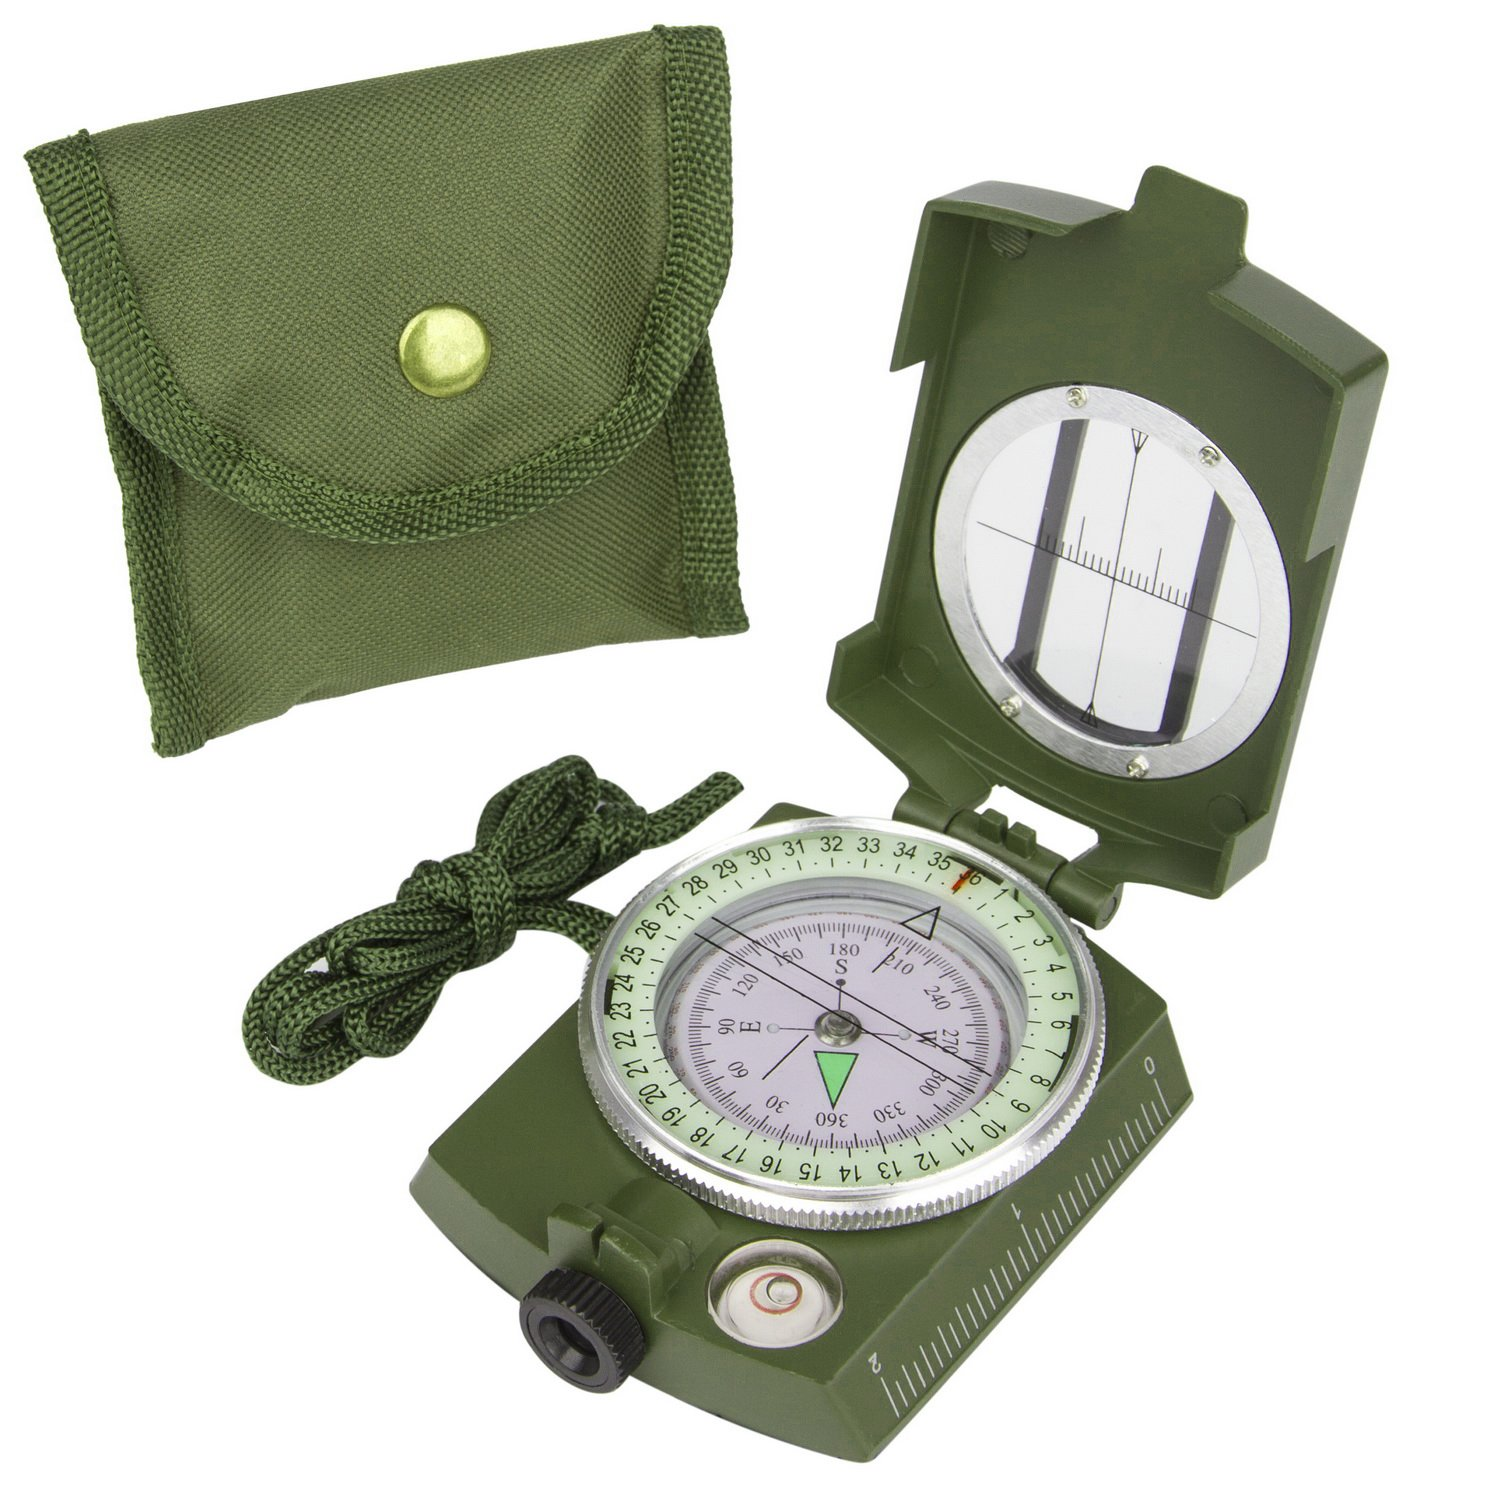 shangda Military Lensatic Prismatic Sighting Compass with Carrying Bag Waterproof and Shakeproof, Camping Fluorescent Pointer Compass, Army Green